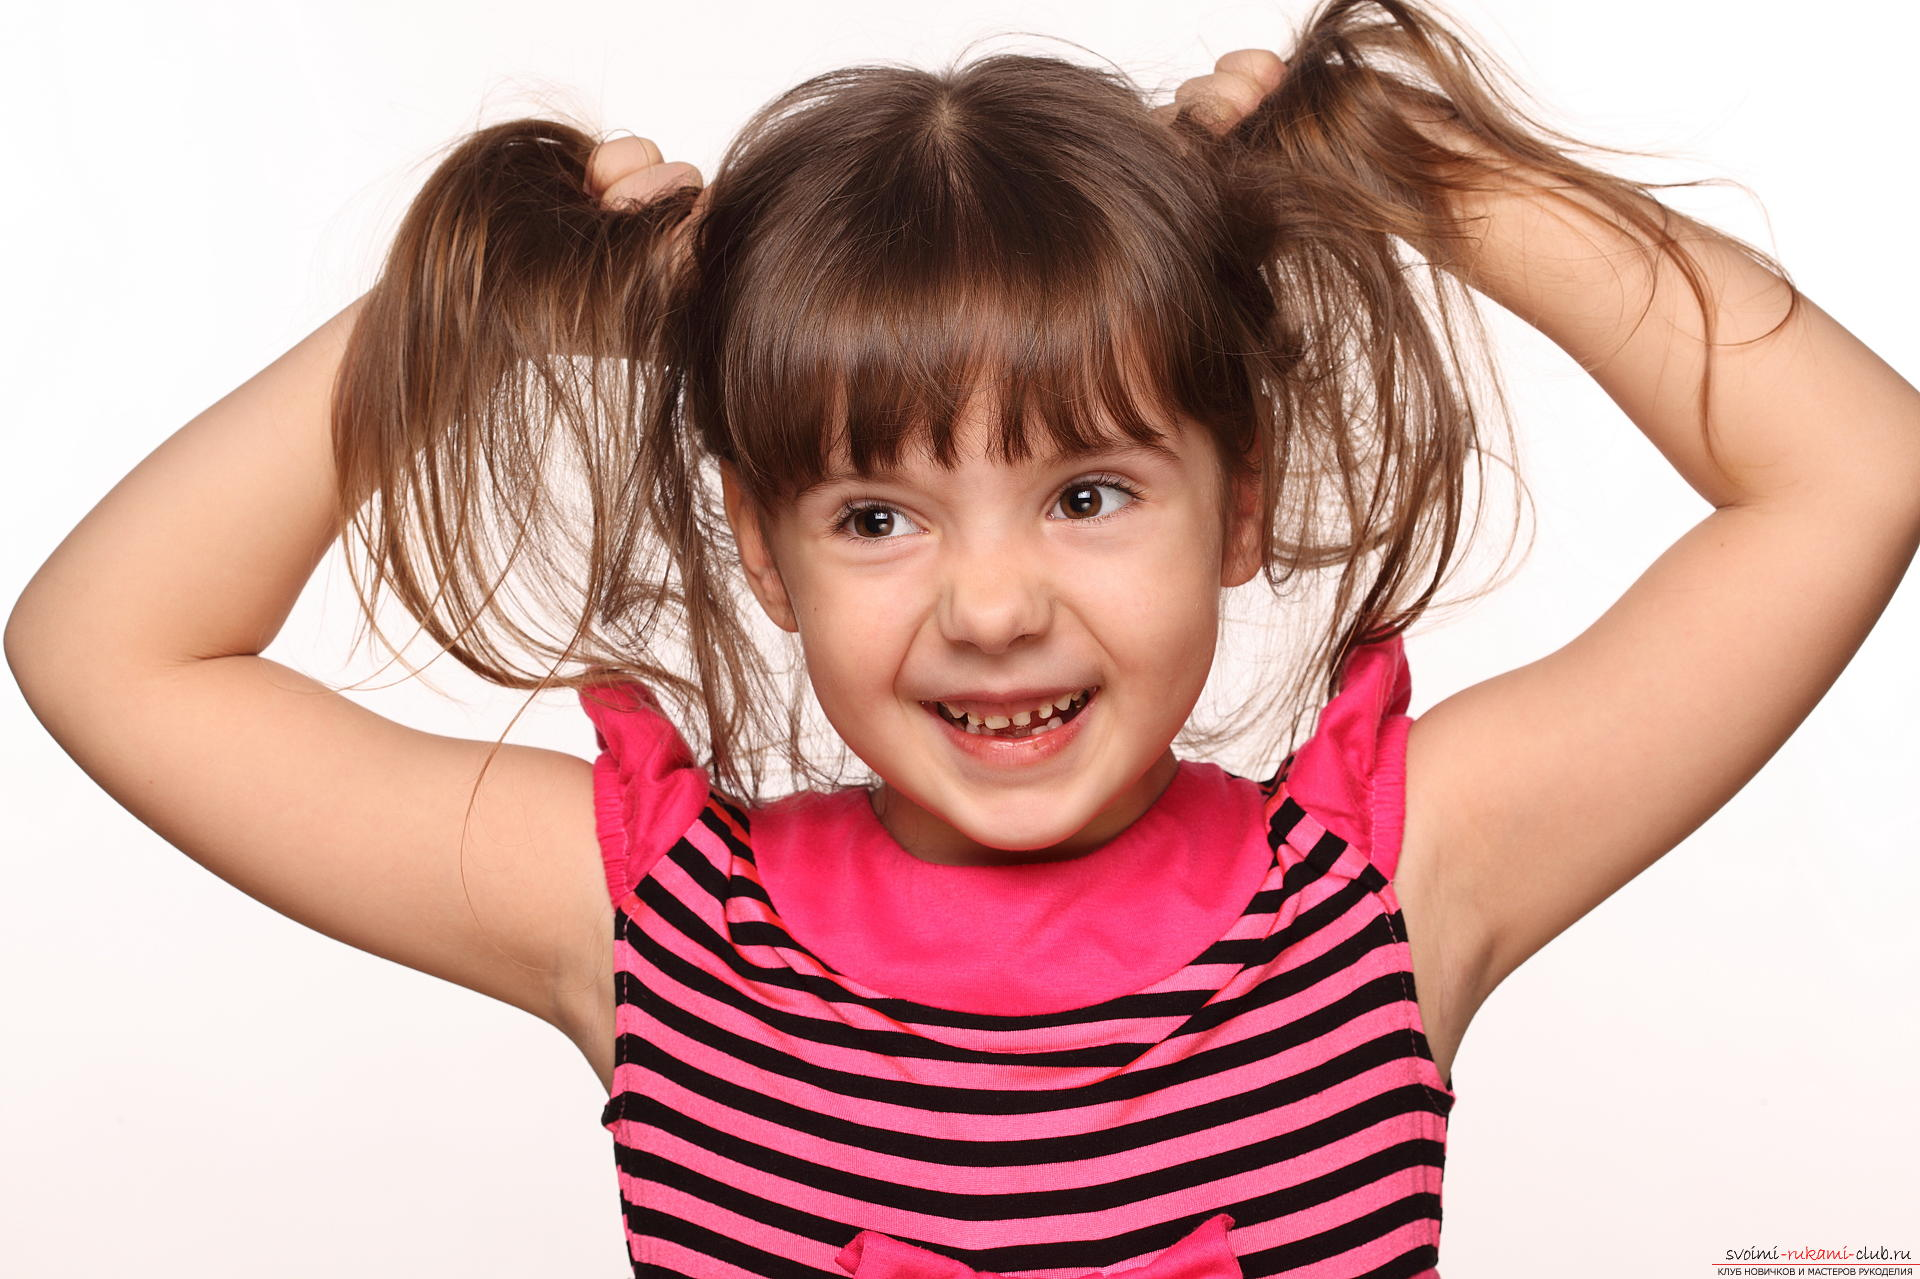 Not complicated hairstyles for little girls. Photo №1